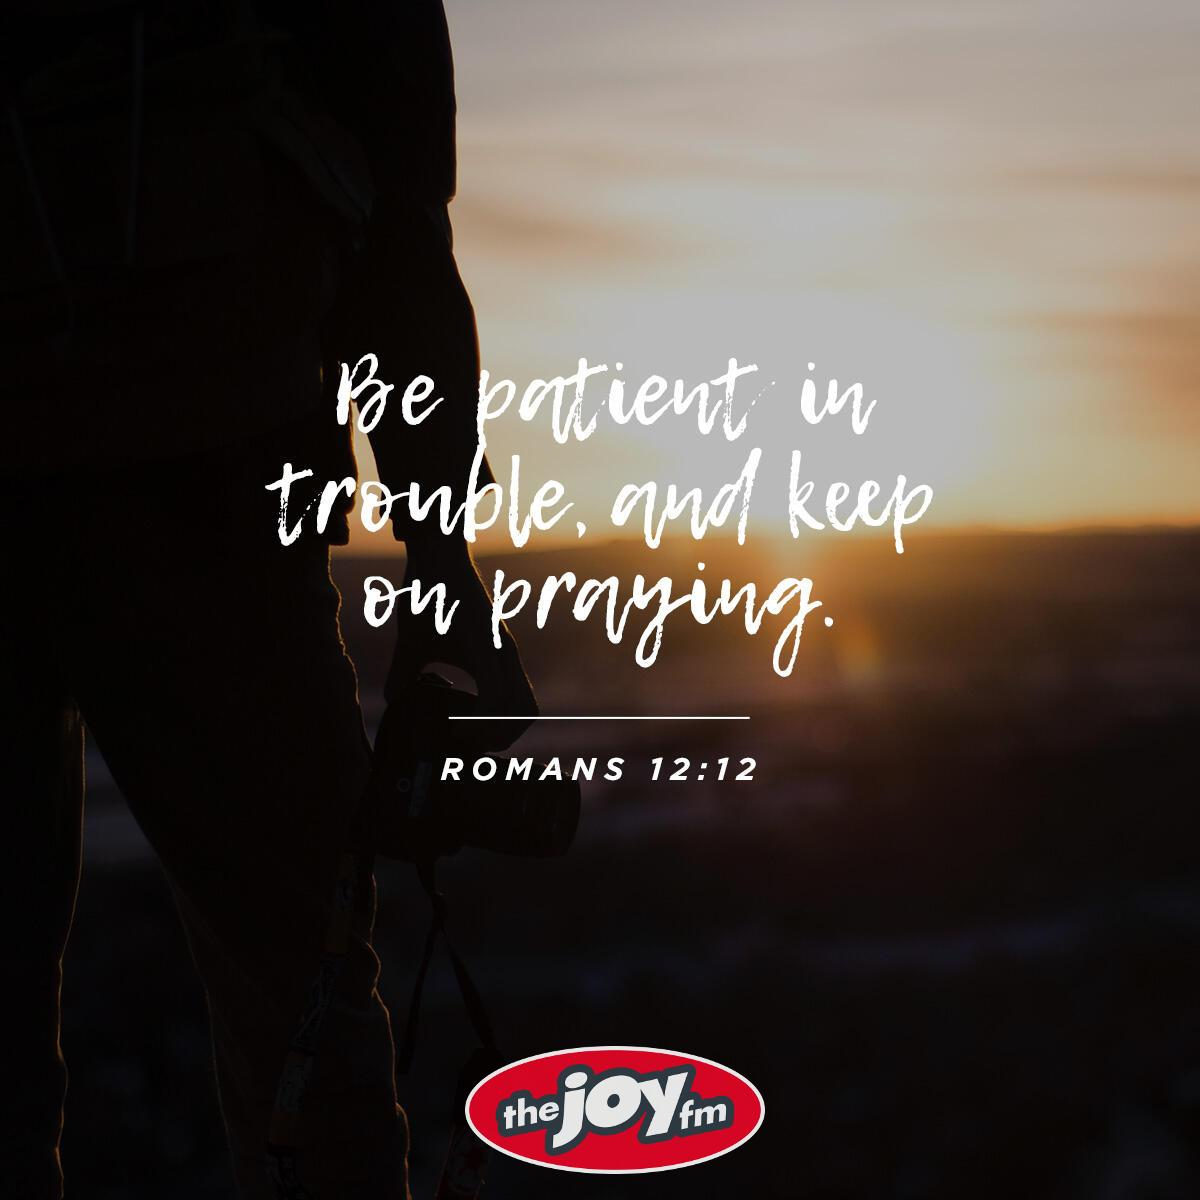 Romans 12:12 - Verse of the Day